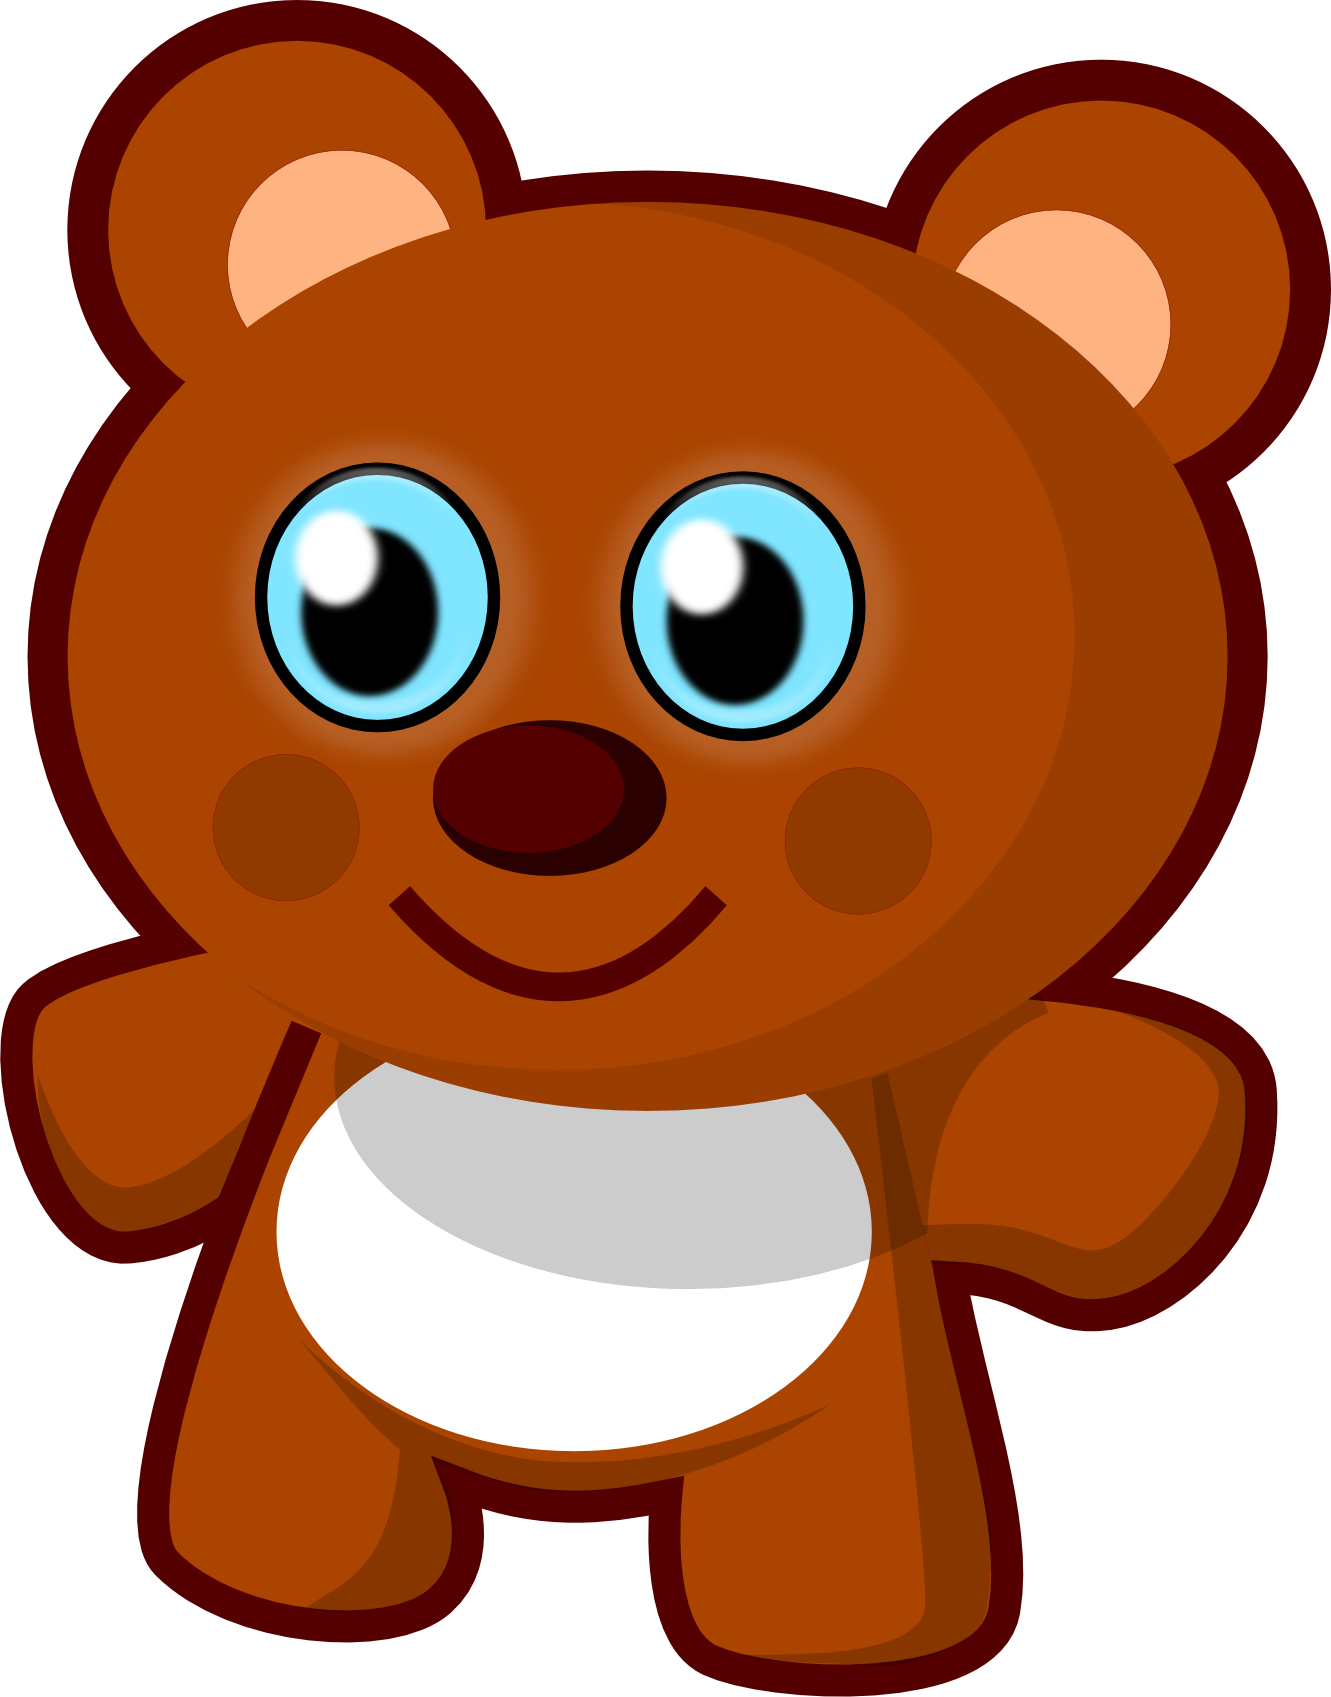 Weight clipart cute. Clip art bear teddy